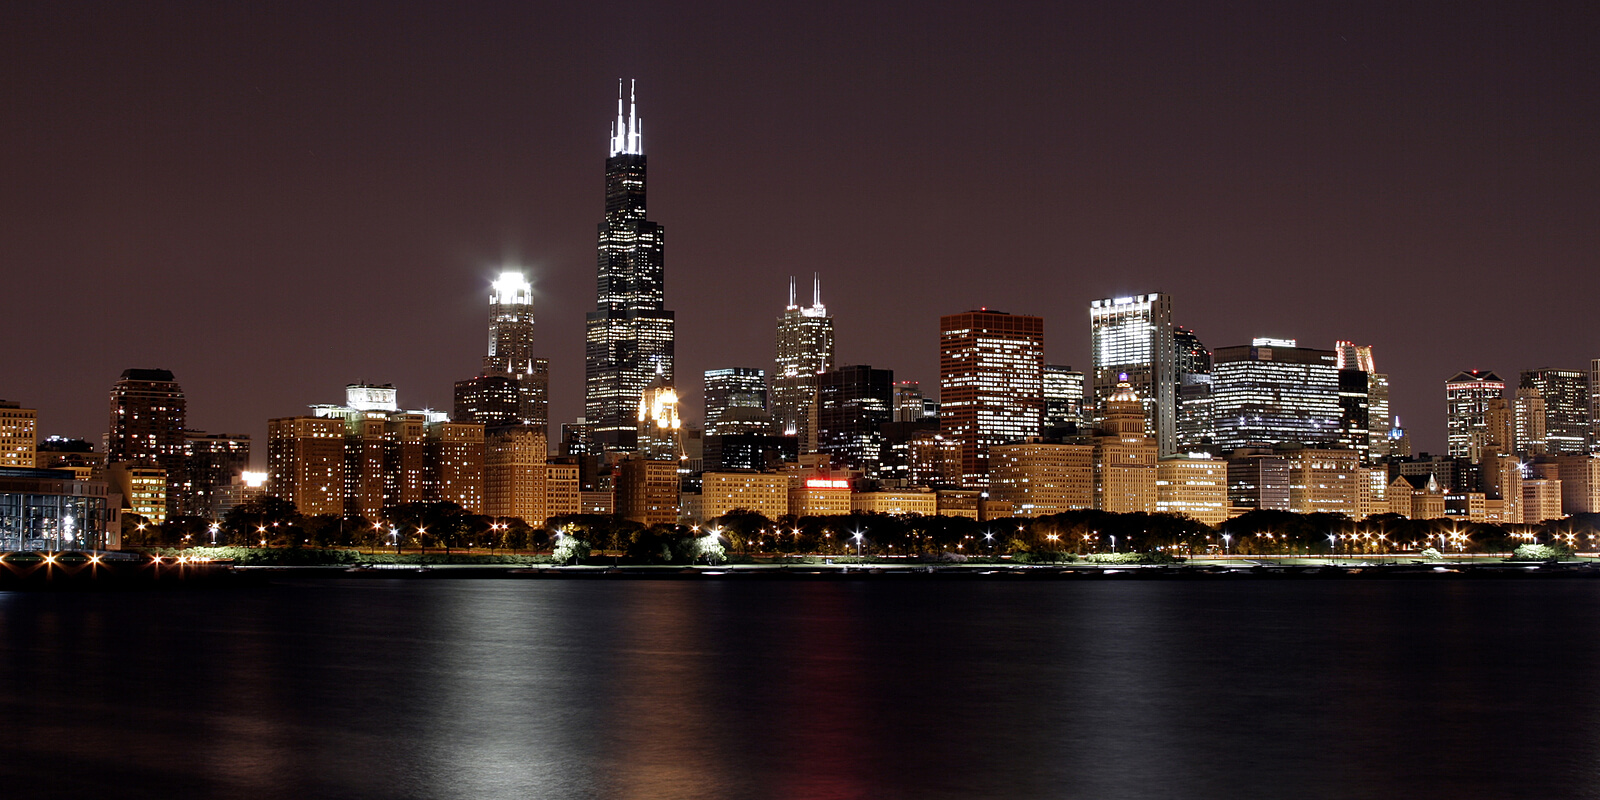 Pre-register for Google's Lake FX Summit + Expo from April 16-19 of year 2015 in Chicago